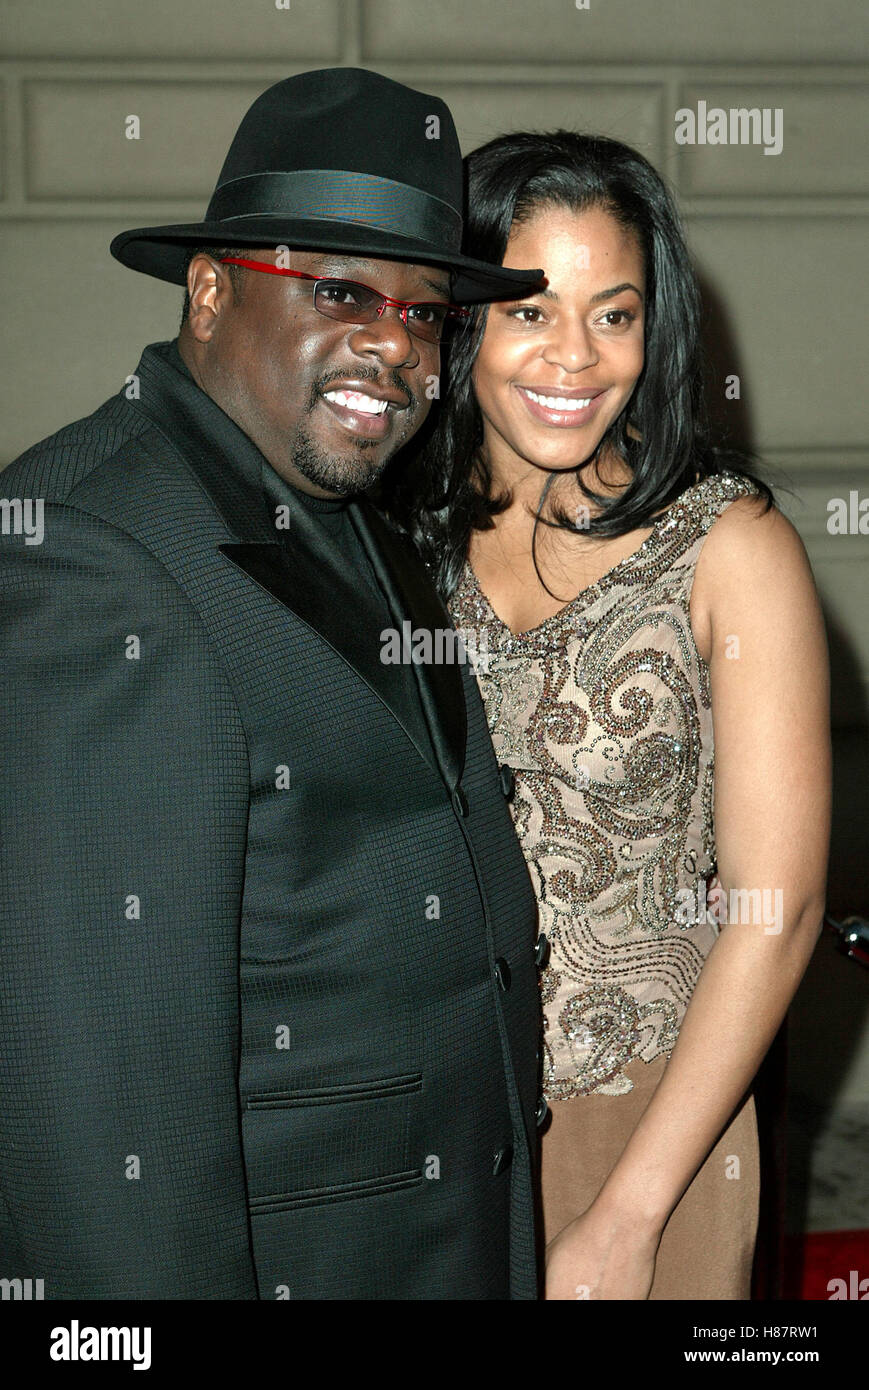 CEDRIC THE ENTERTAINER & LORNA WELLS 29TH PEOPLE'S CHOICE ...Lorna Wells